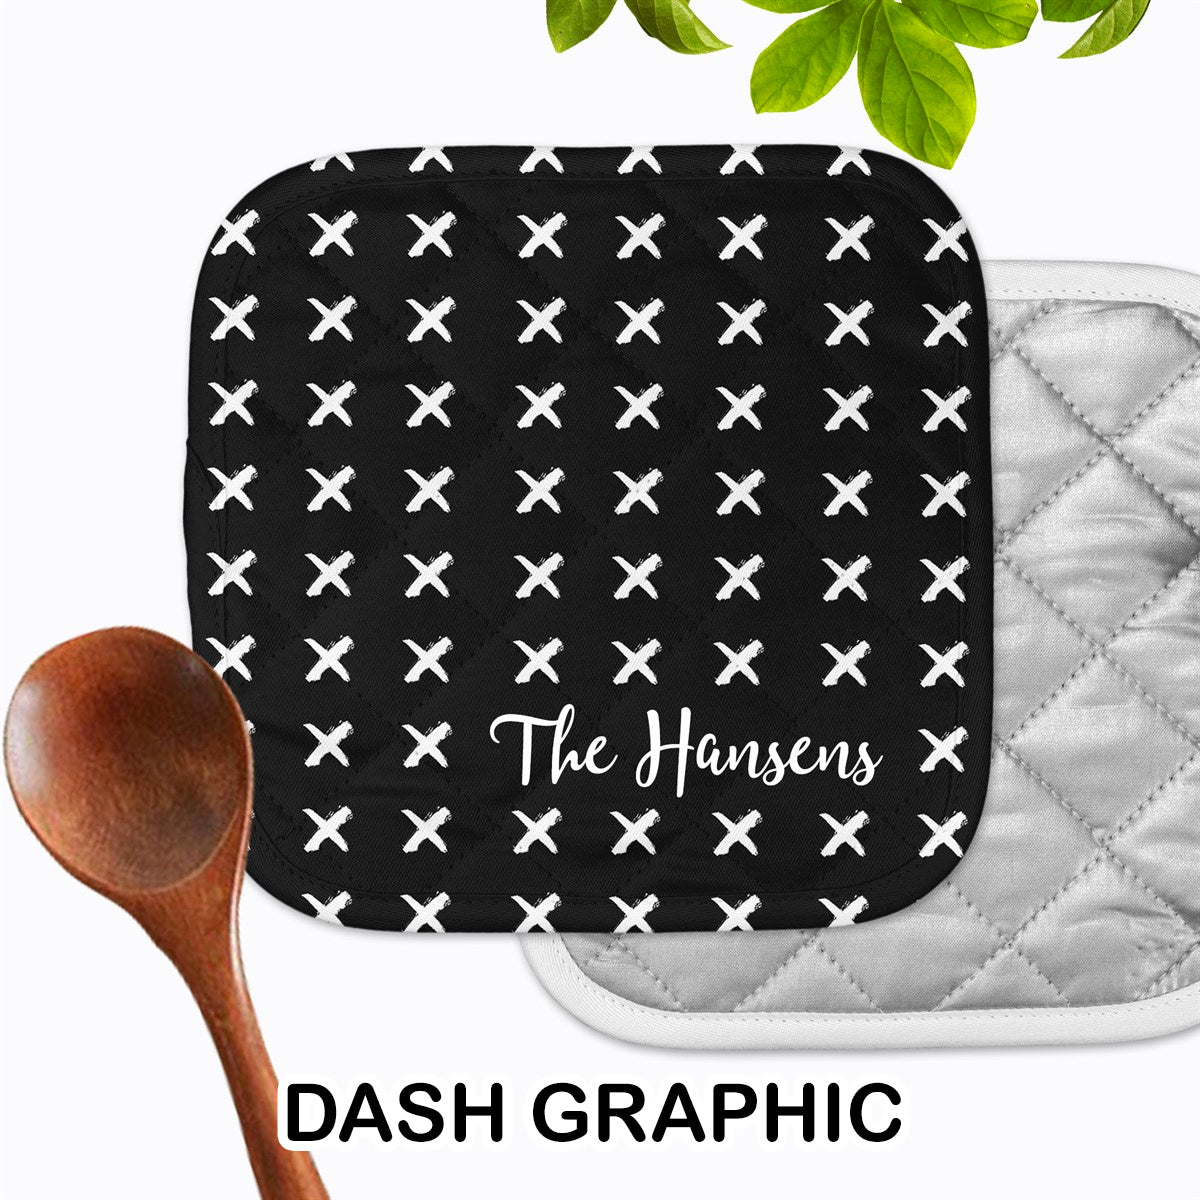 Personalized - Dash Graphic Hot Pad - Second East